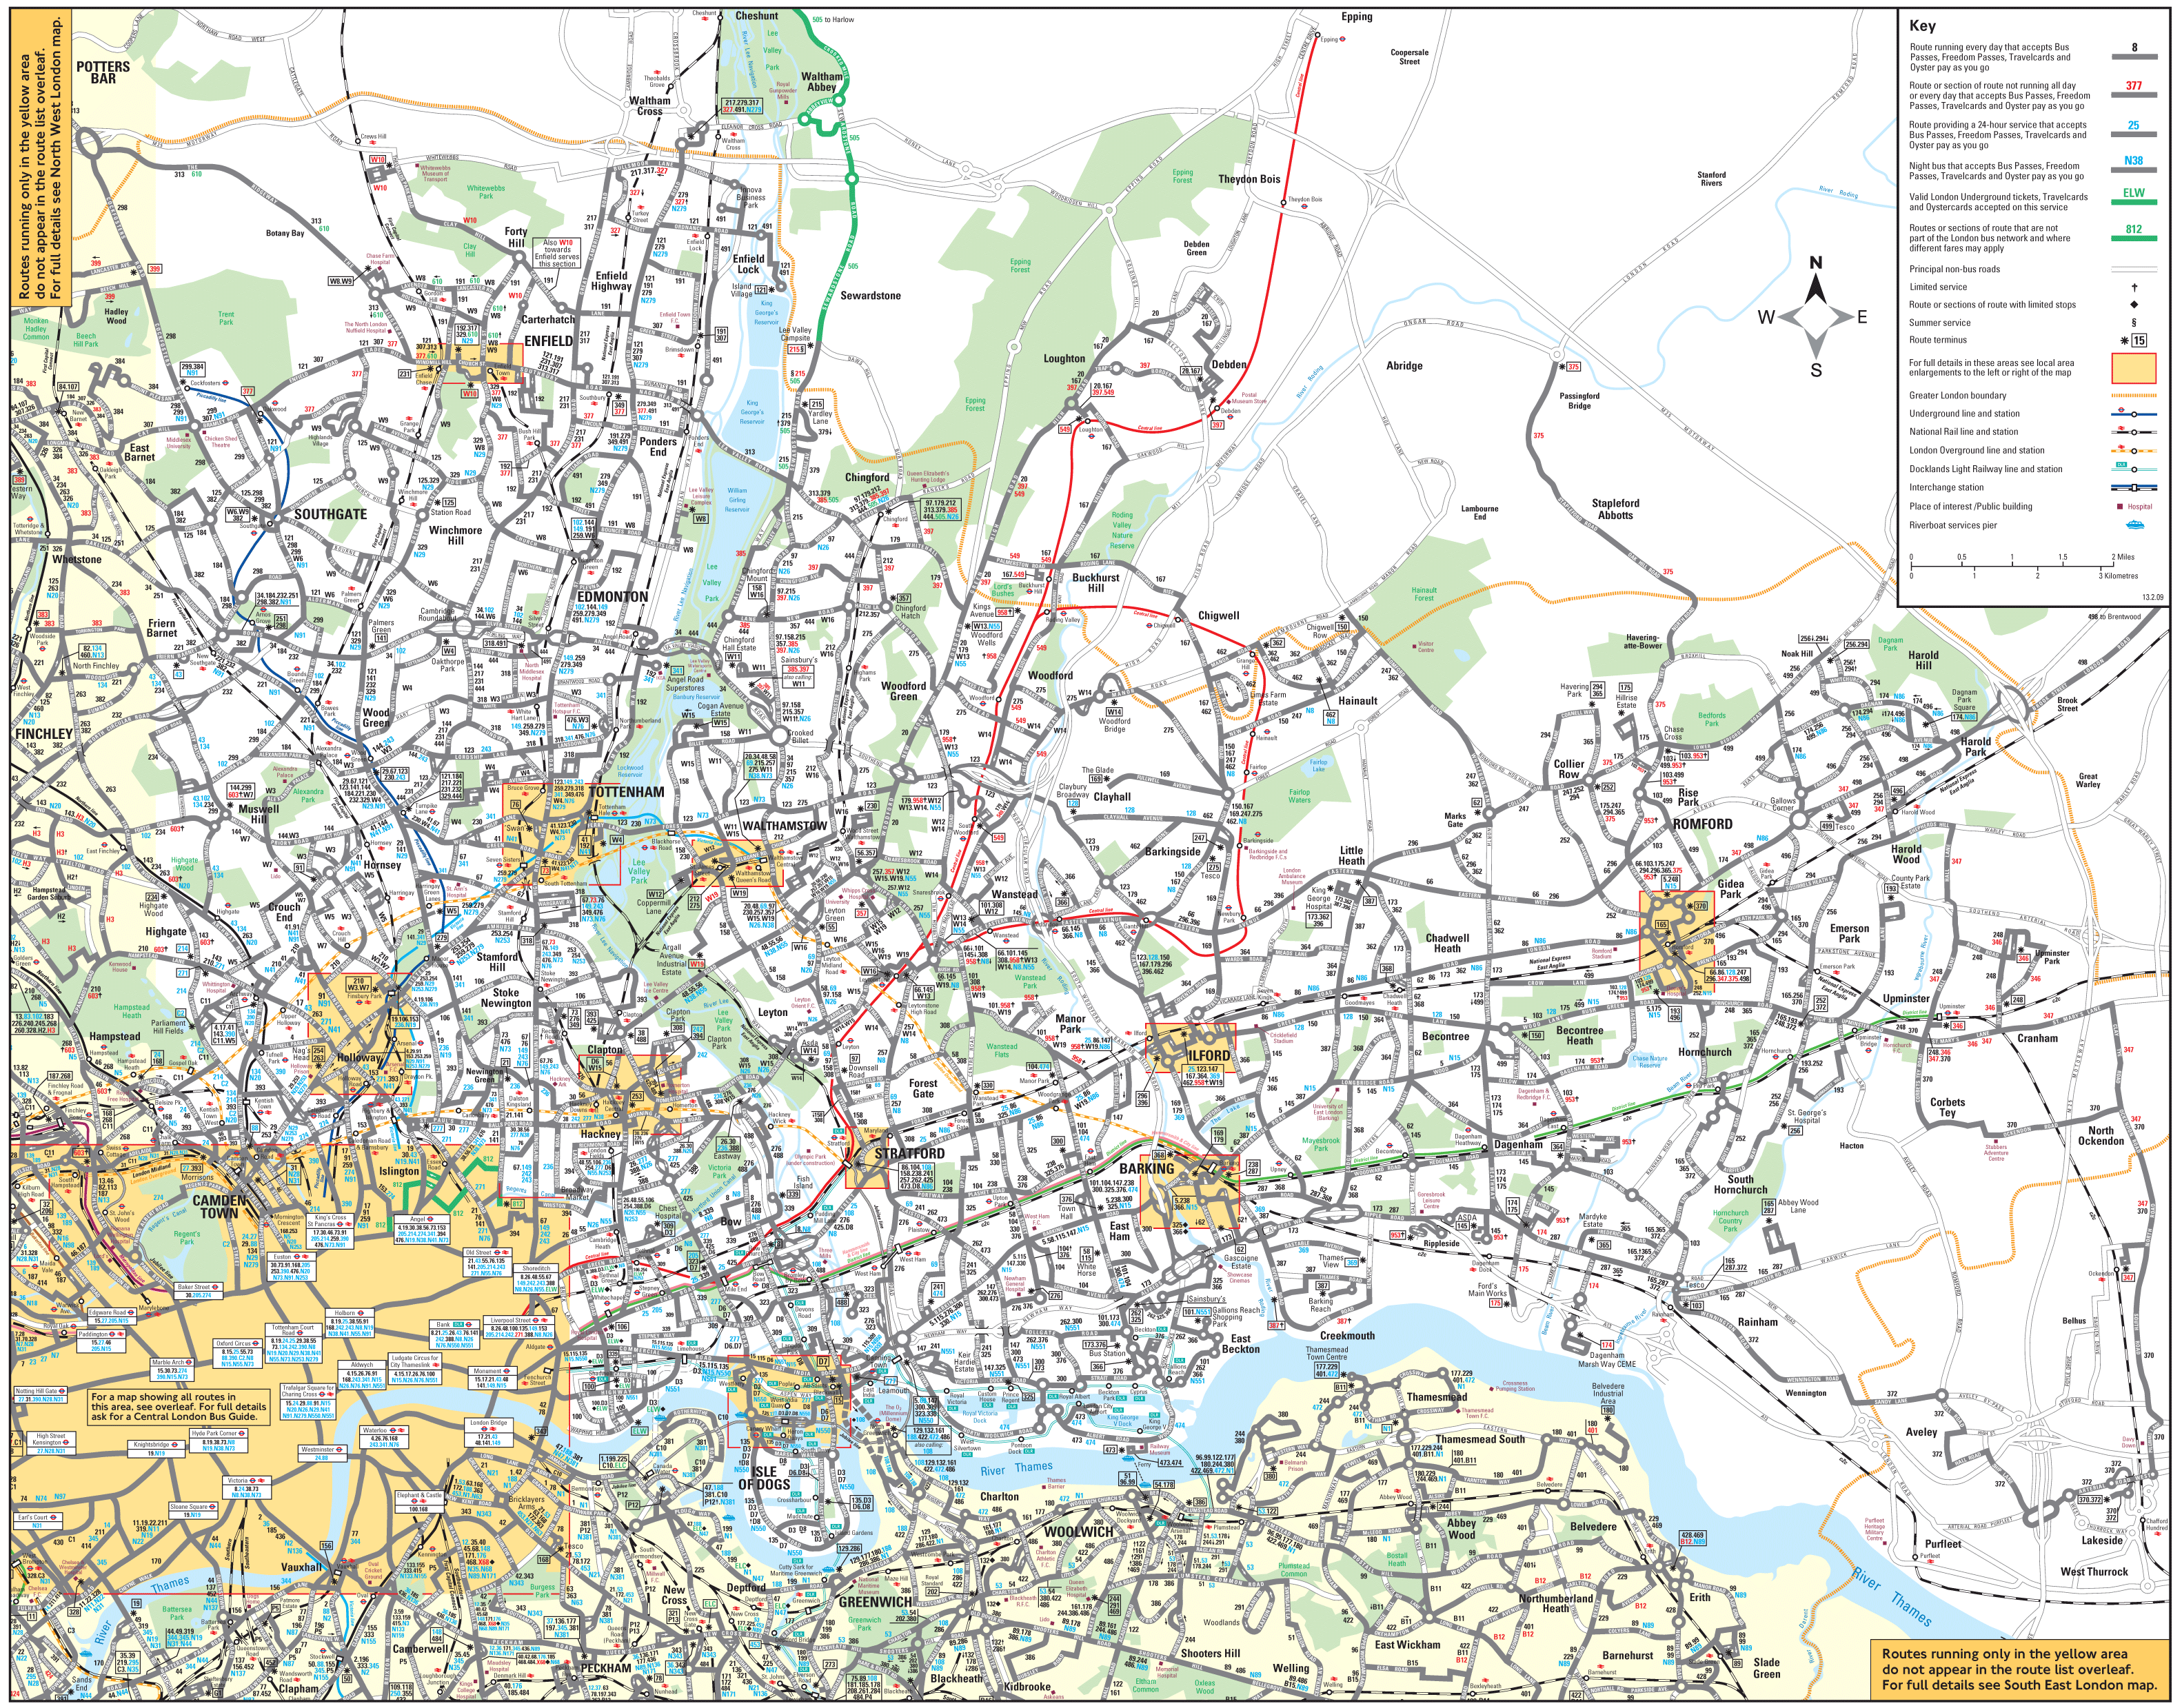 South West London Bus Map Mapsofnet - Map of north london areas